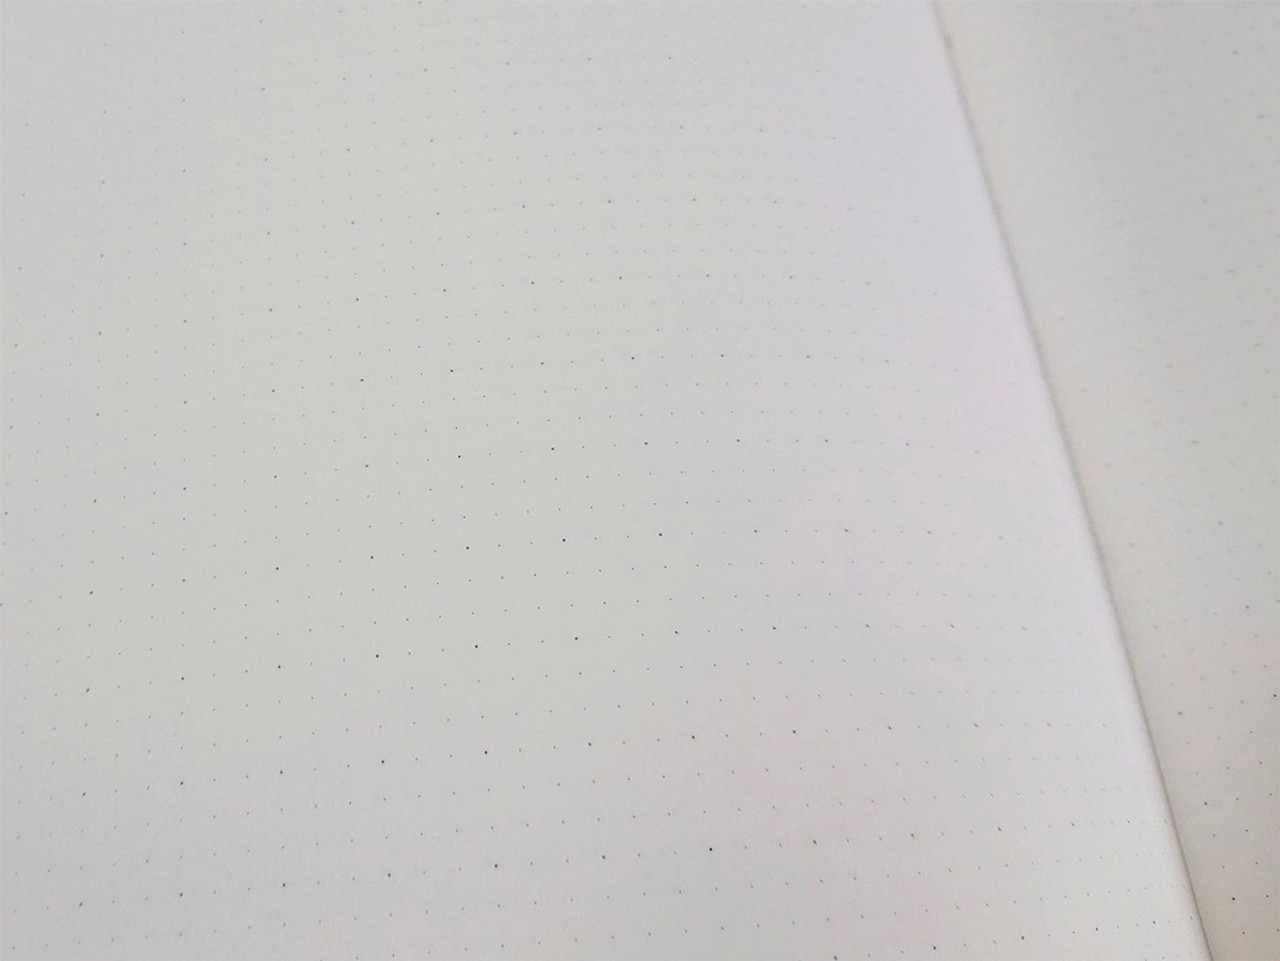 Archie's notebook dot grid close-up